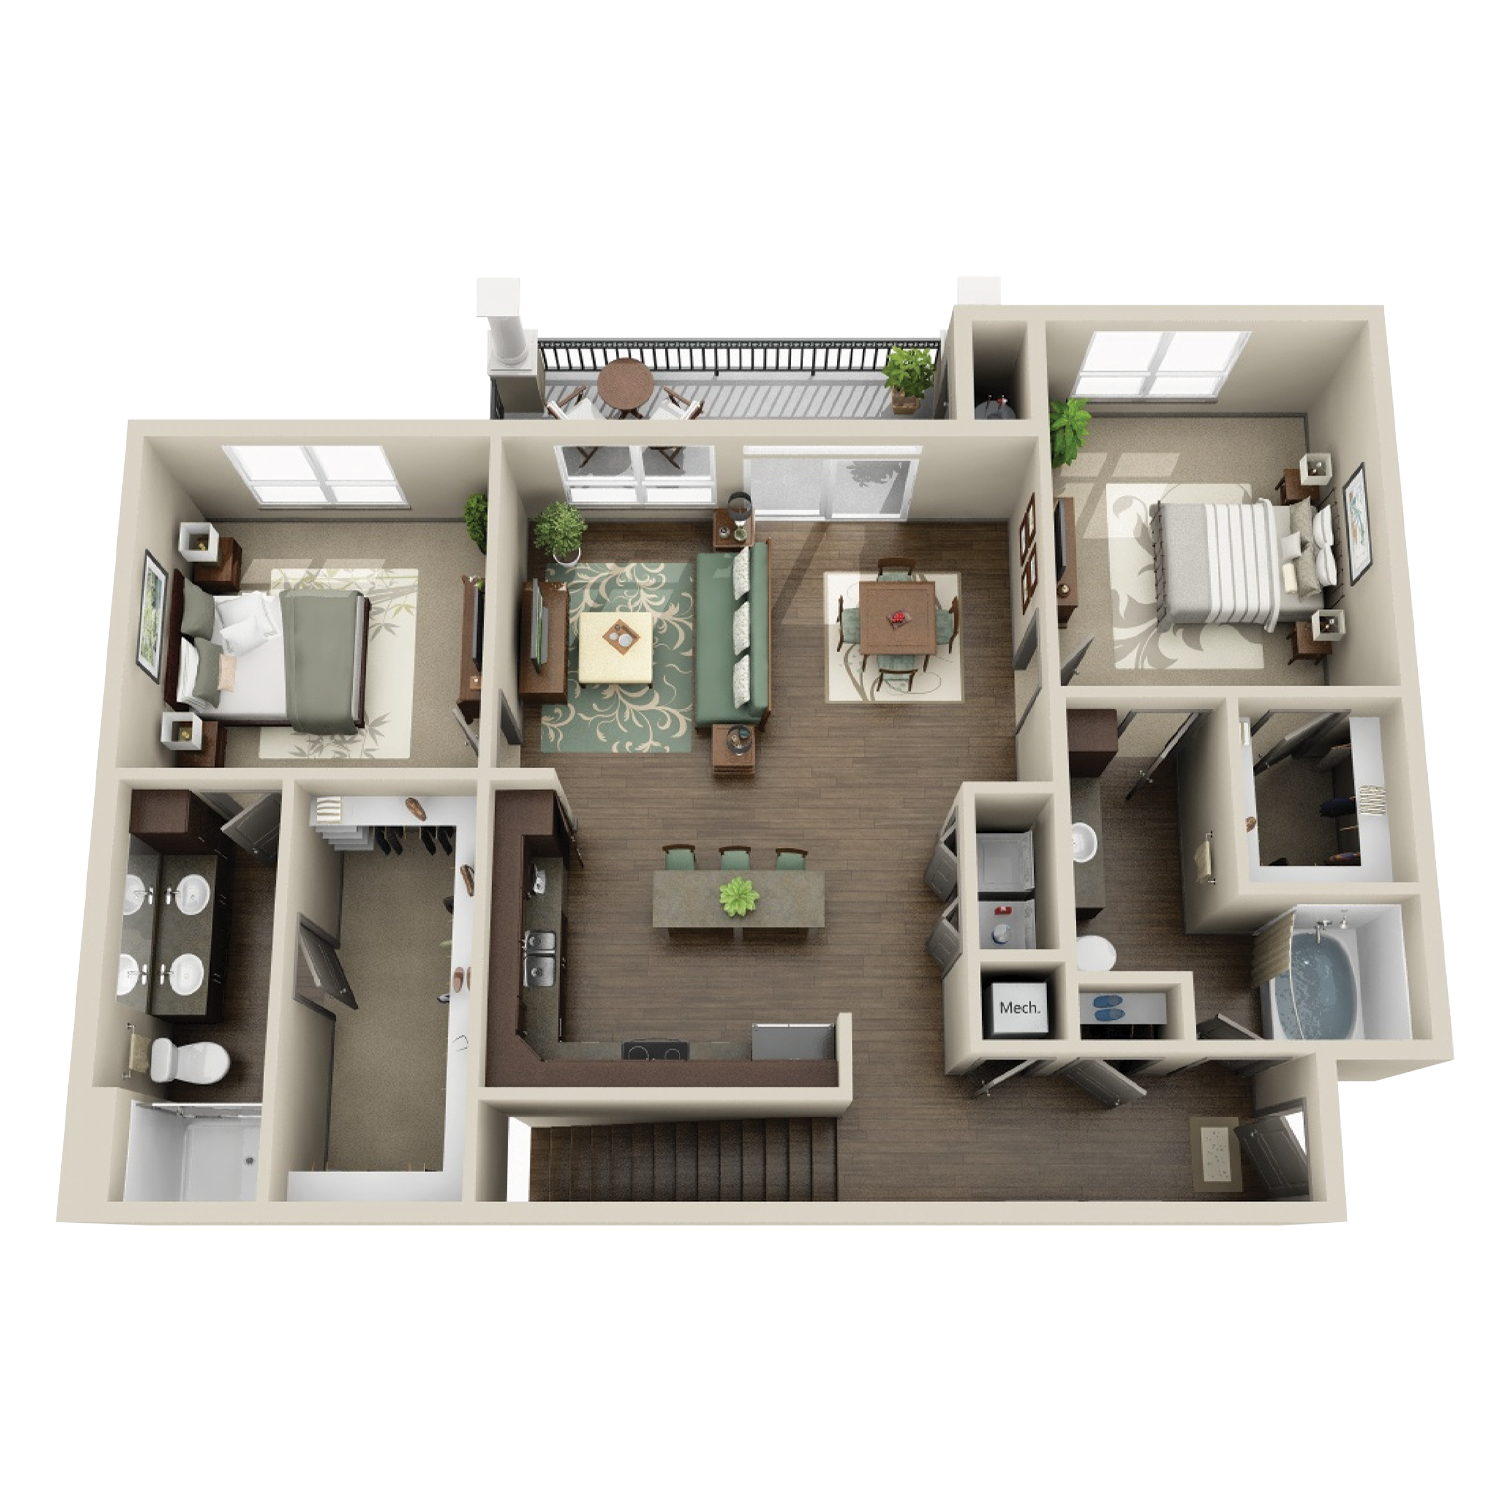 B3B floor plan featuring 2 bedrooms and 2 baths